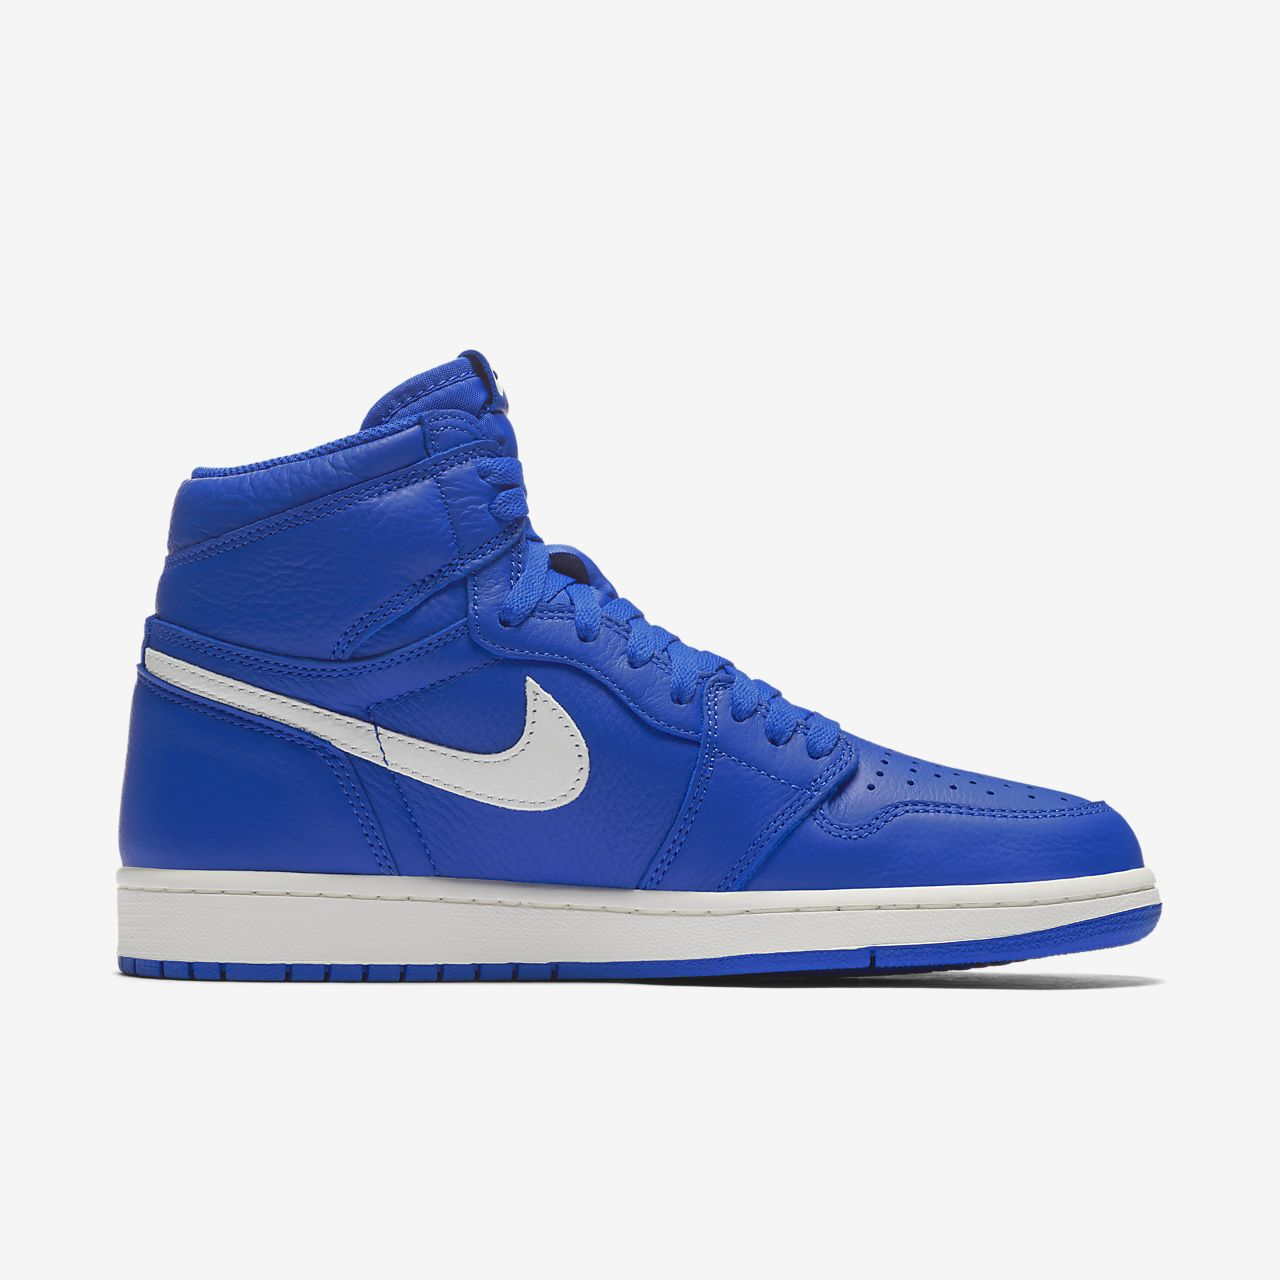 new styles 2f2d1 e0981 ... Air Jordan 1 Retro High OG Shoe